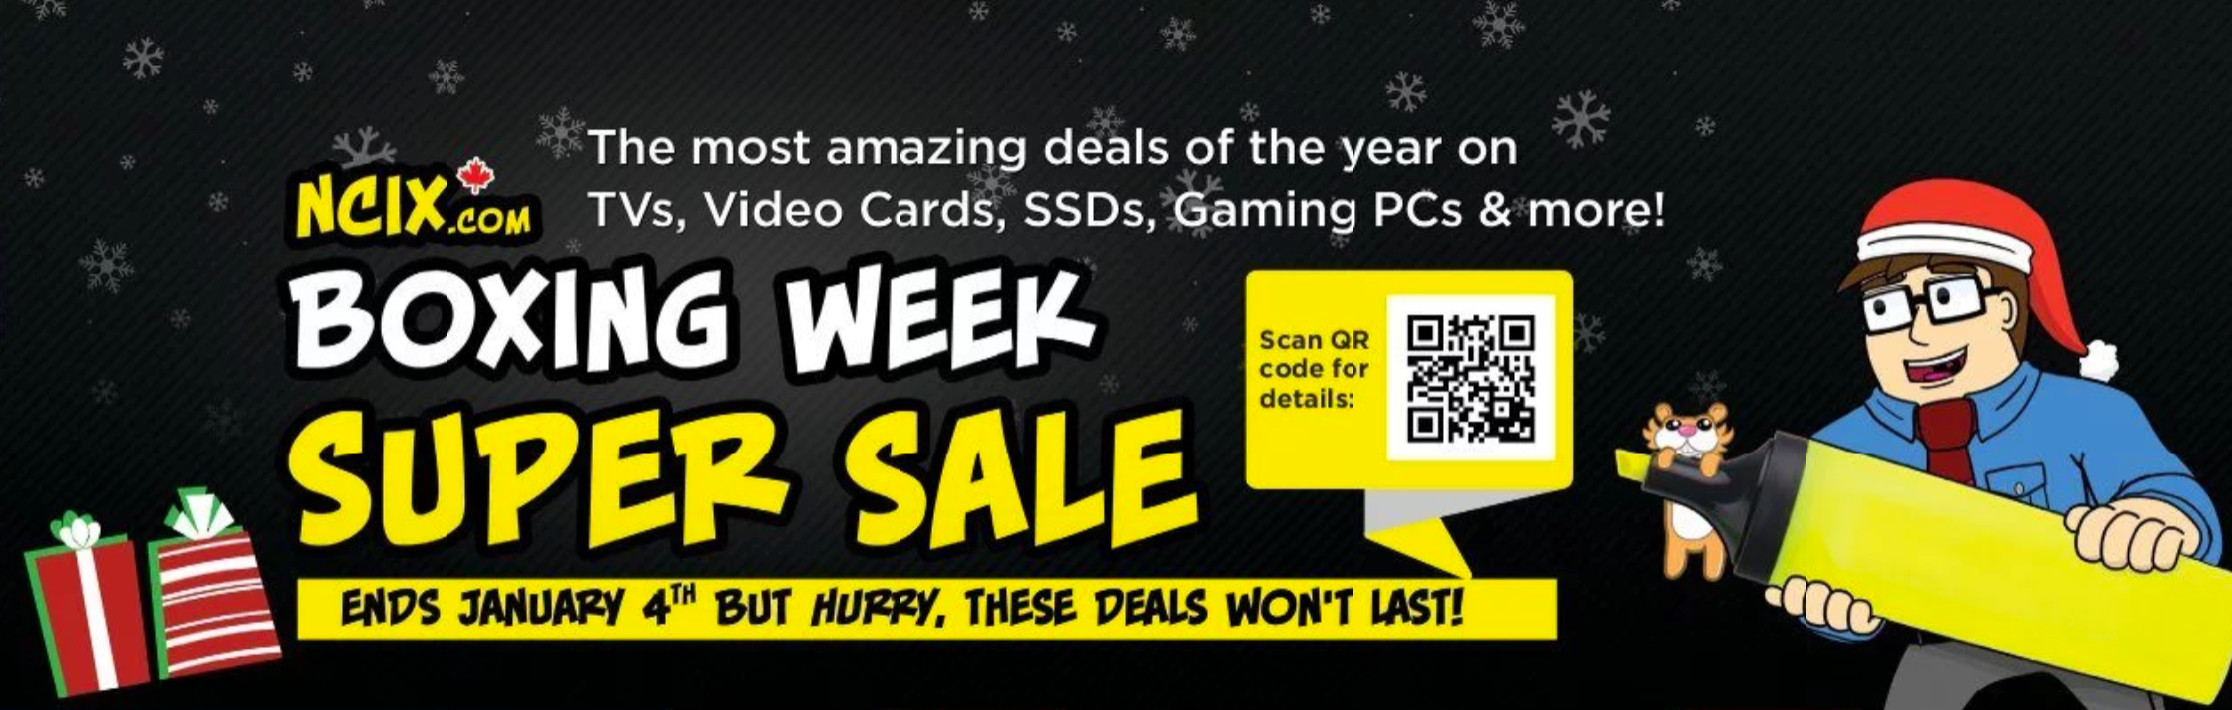 ncix-boxing-day